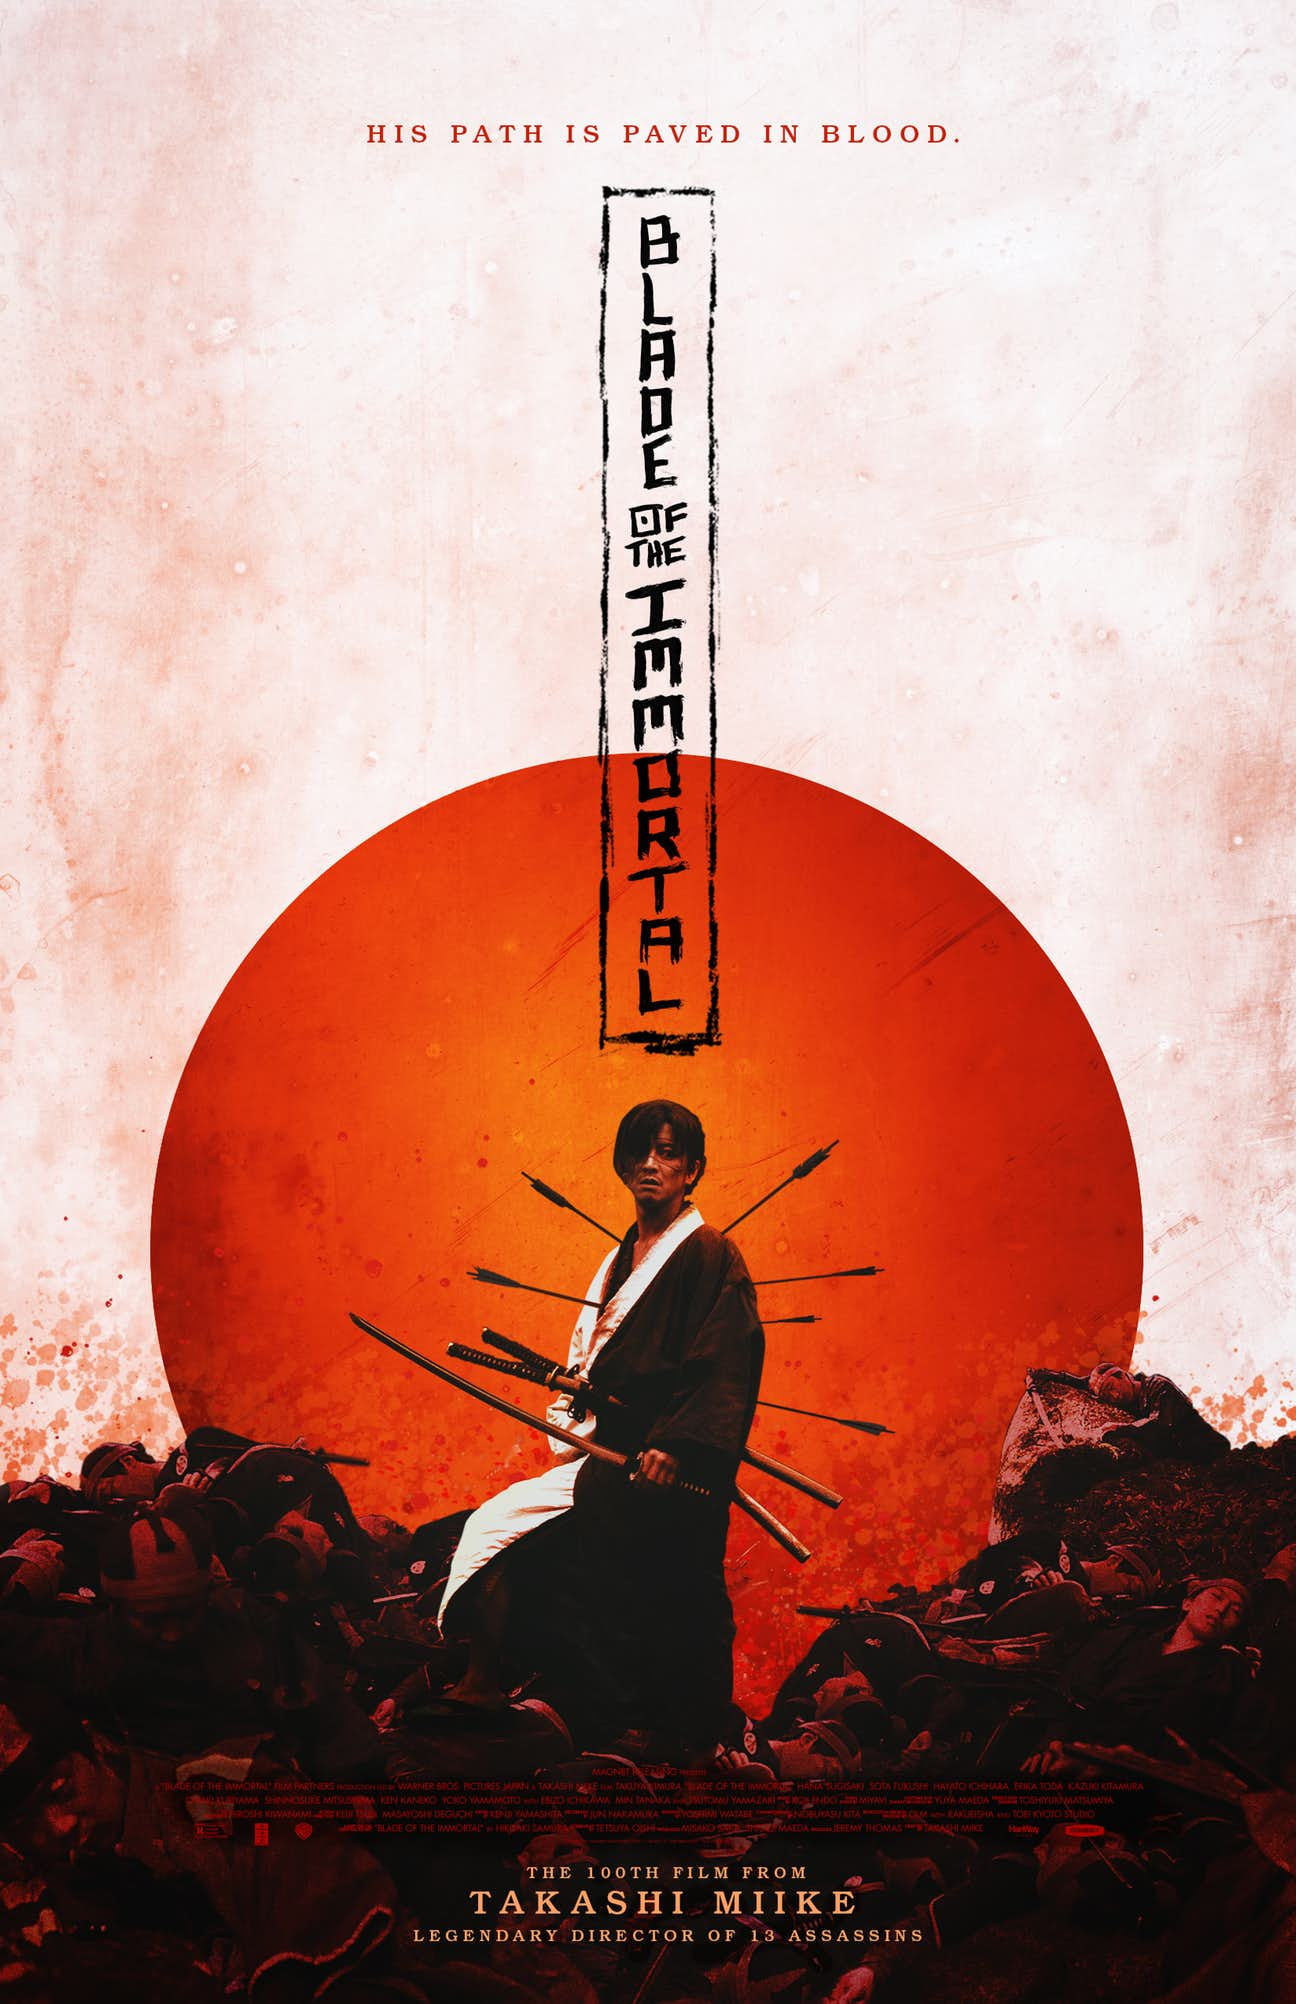 Blade of the Immortal Alternate Movie Poster2 1 - Interview: Takashi Miike on Blade of the Immortal, Directing 100 Films, and More; New Clips!